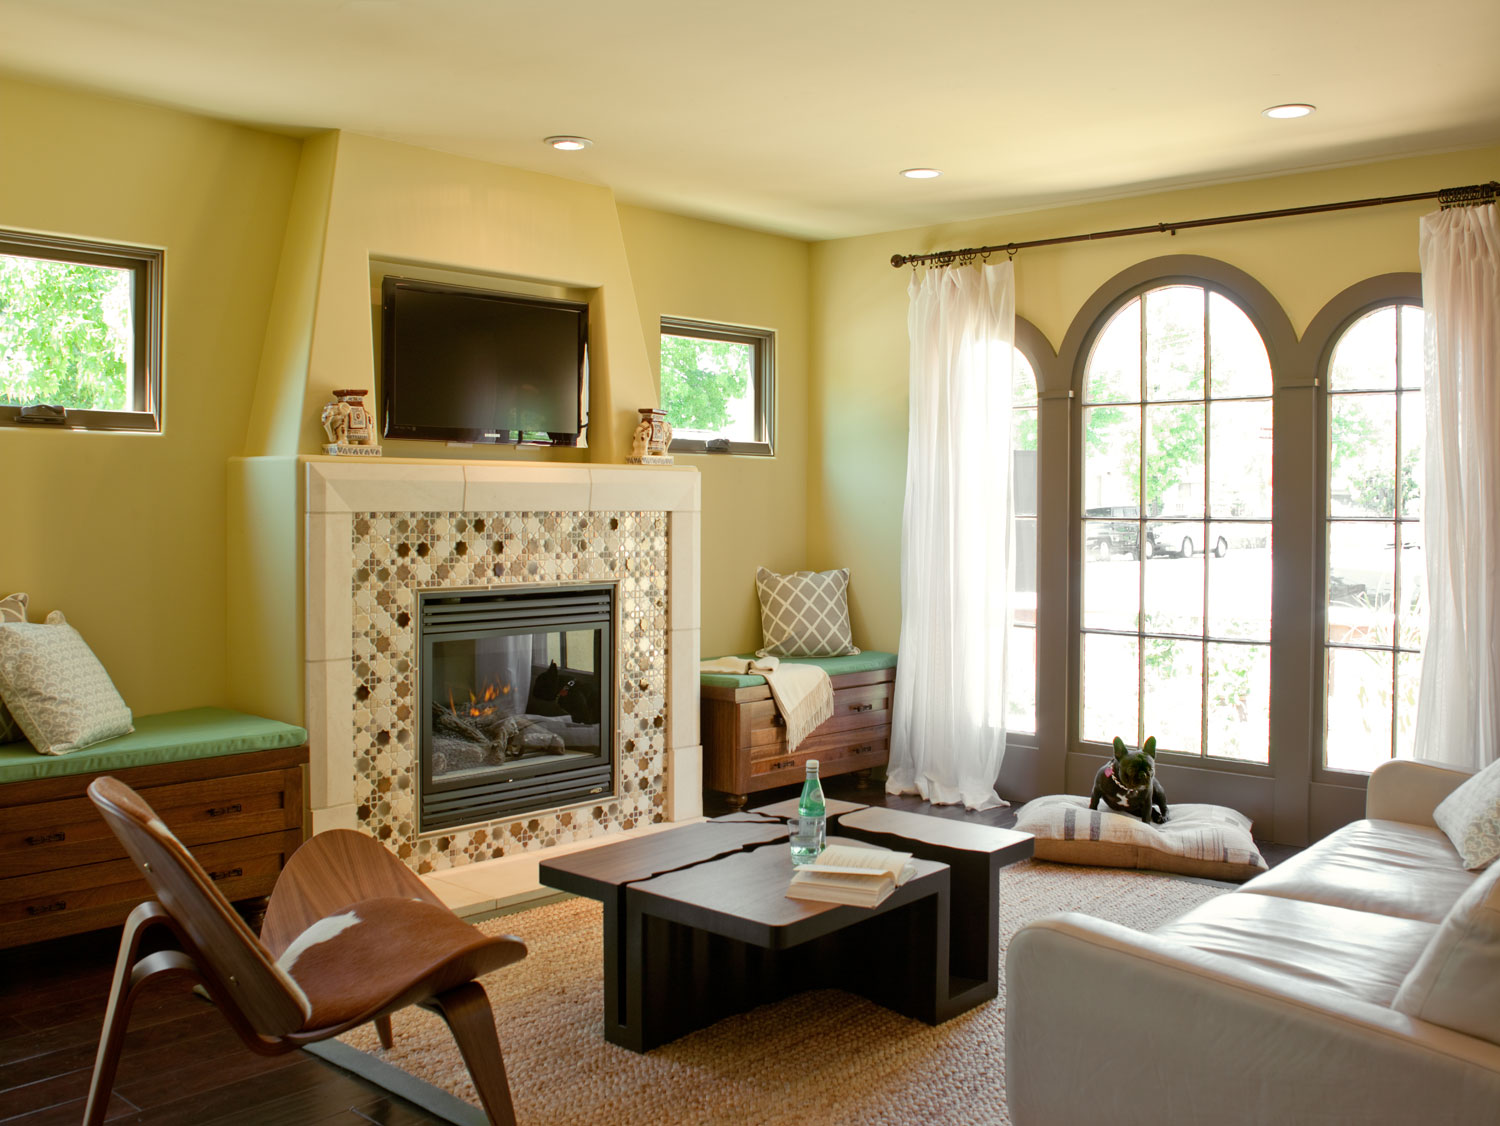 Meet Our Dream Remodel - Sunset Magazine